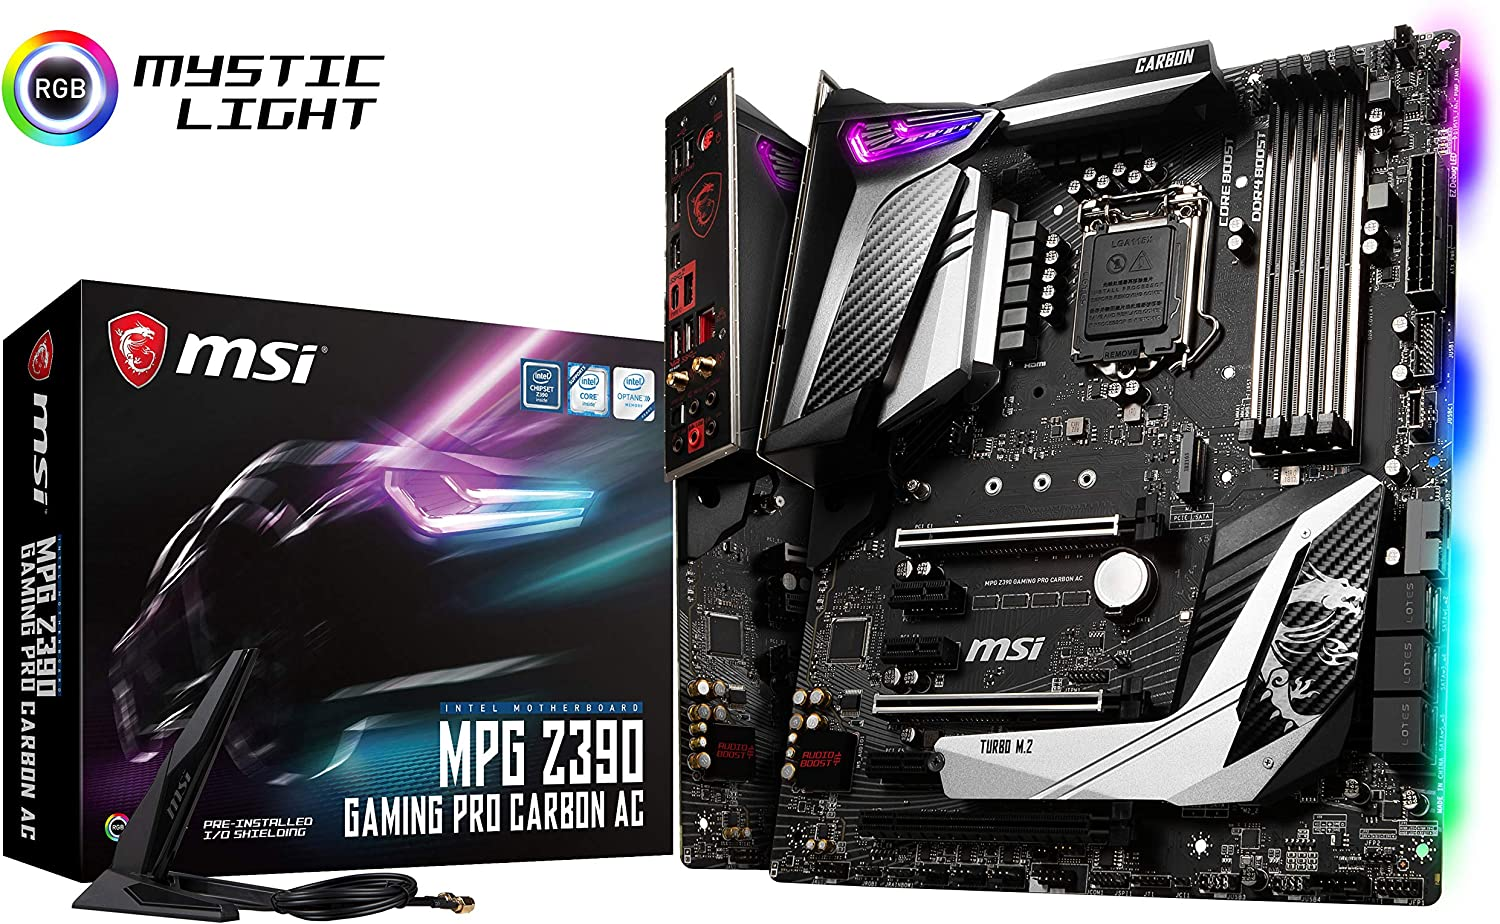 MSI MPG Z390 Gaming PRO Carbon AC LGA1151 (Intel 8th and 9th Gen) M.2 USB 3.1 Gen 2 DDR4 HDMI DP Wi-Fi SLI CFX ATX Z390 Gaming Motherboard